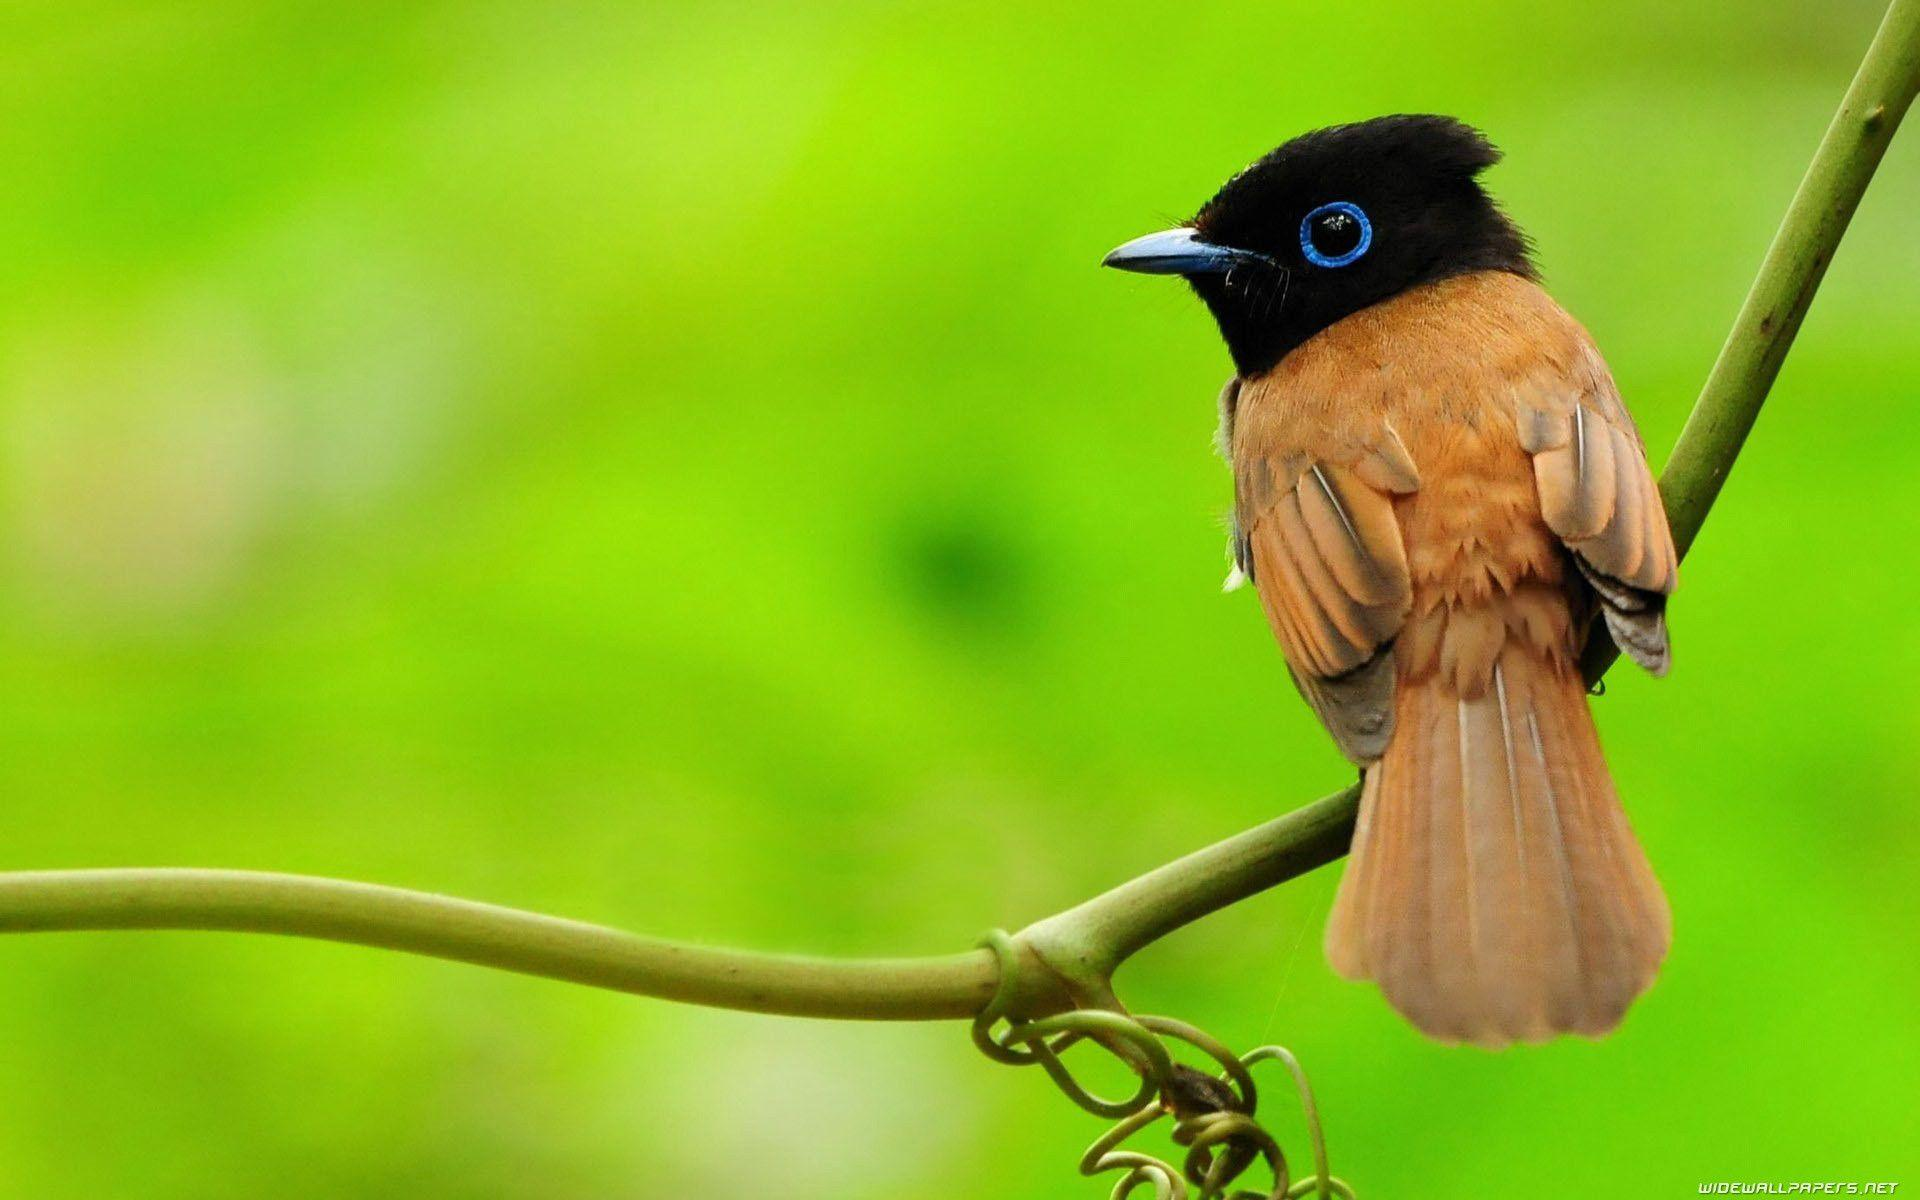 New wallpaper of birds - Dhoomwallpaper.com | Latest HD Wallpaper ...